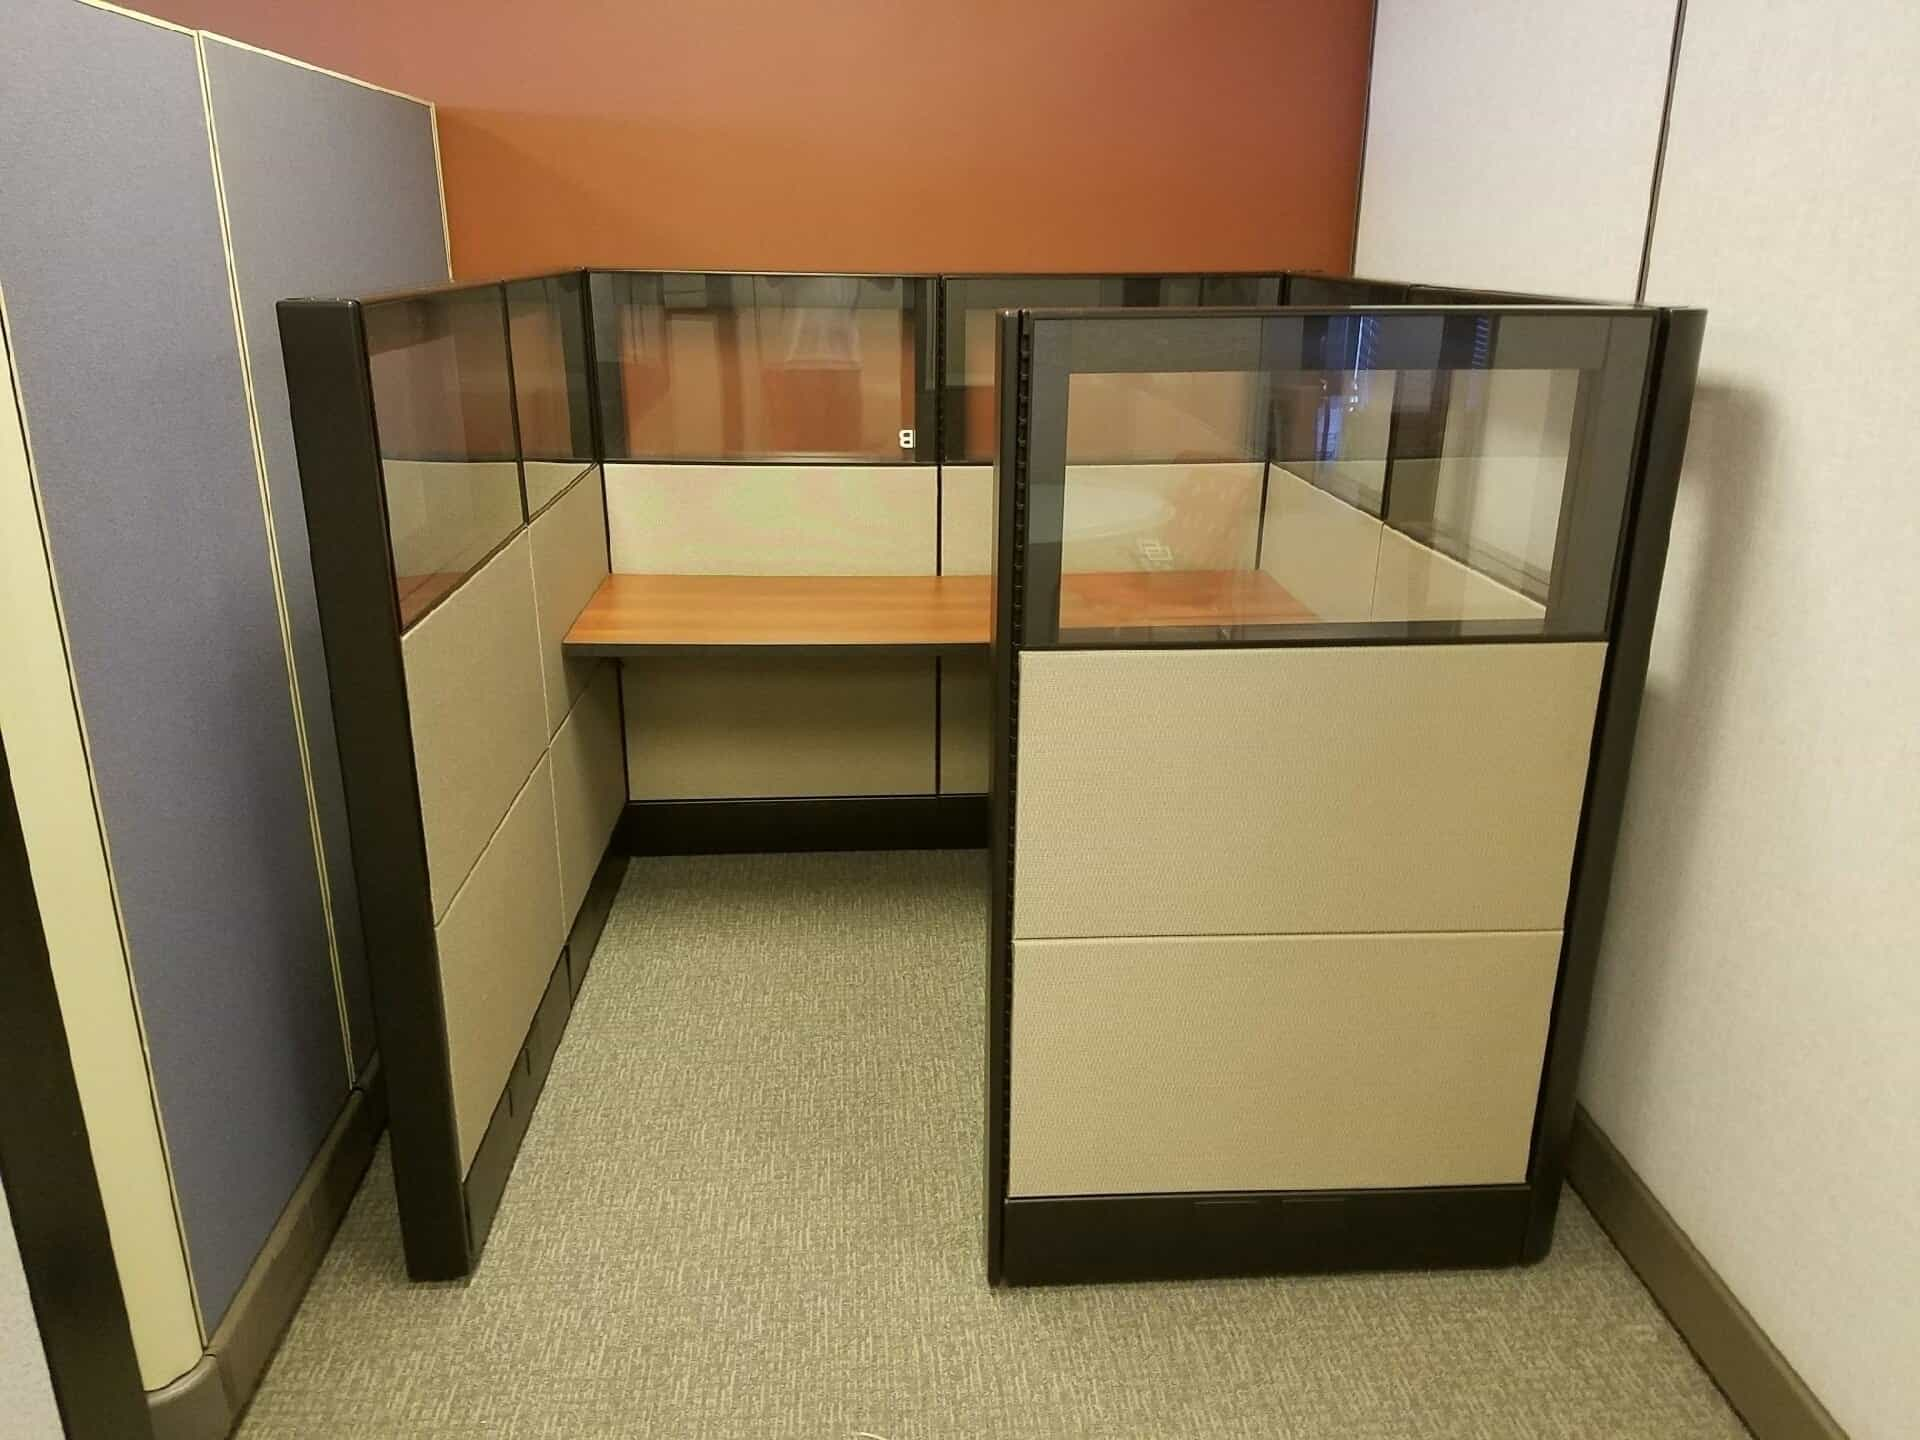 Herman Miller Ethospace Stations With Glass Used Office